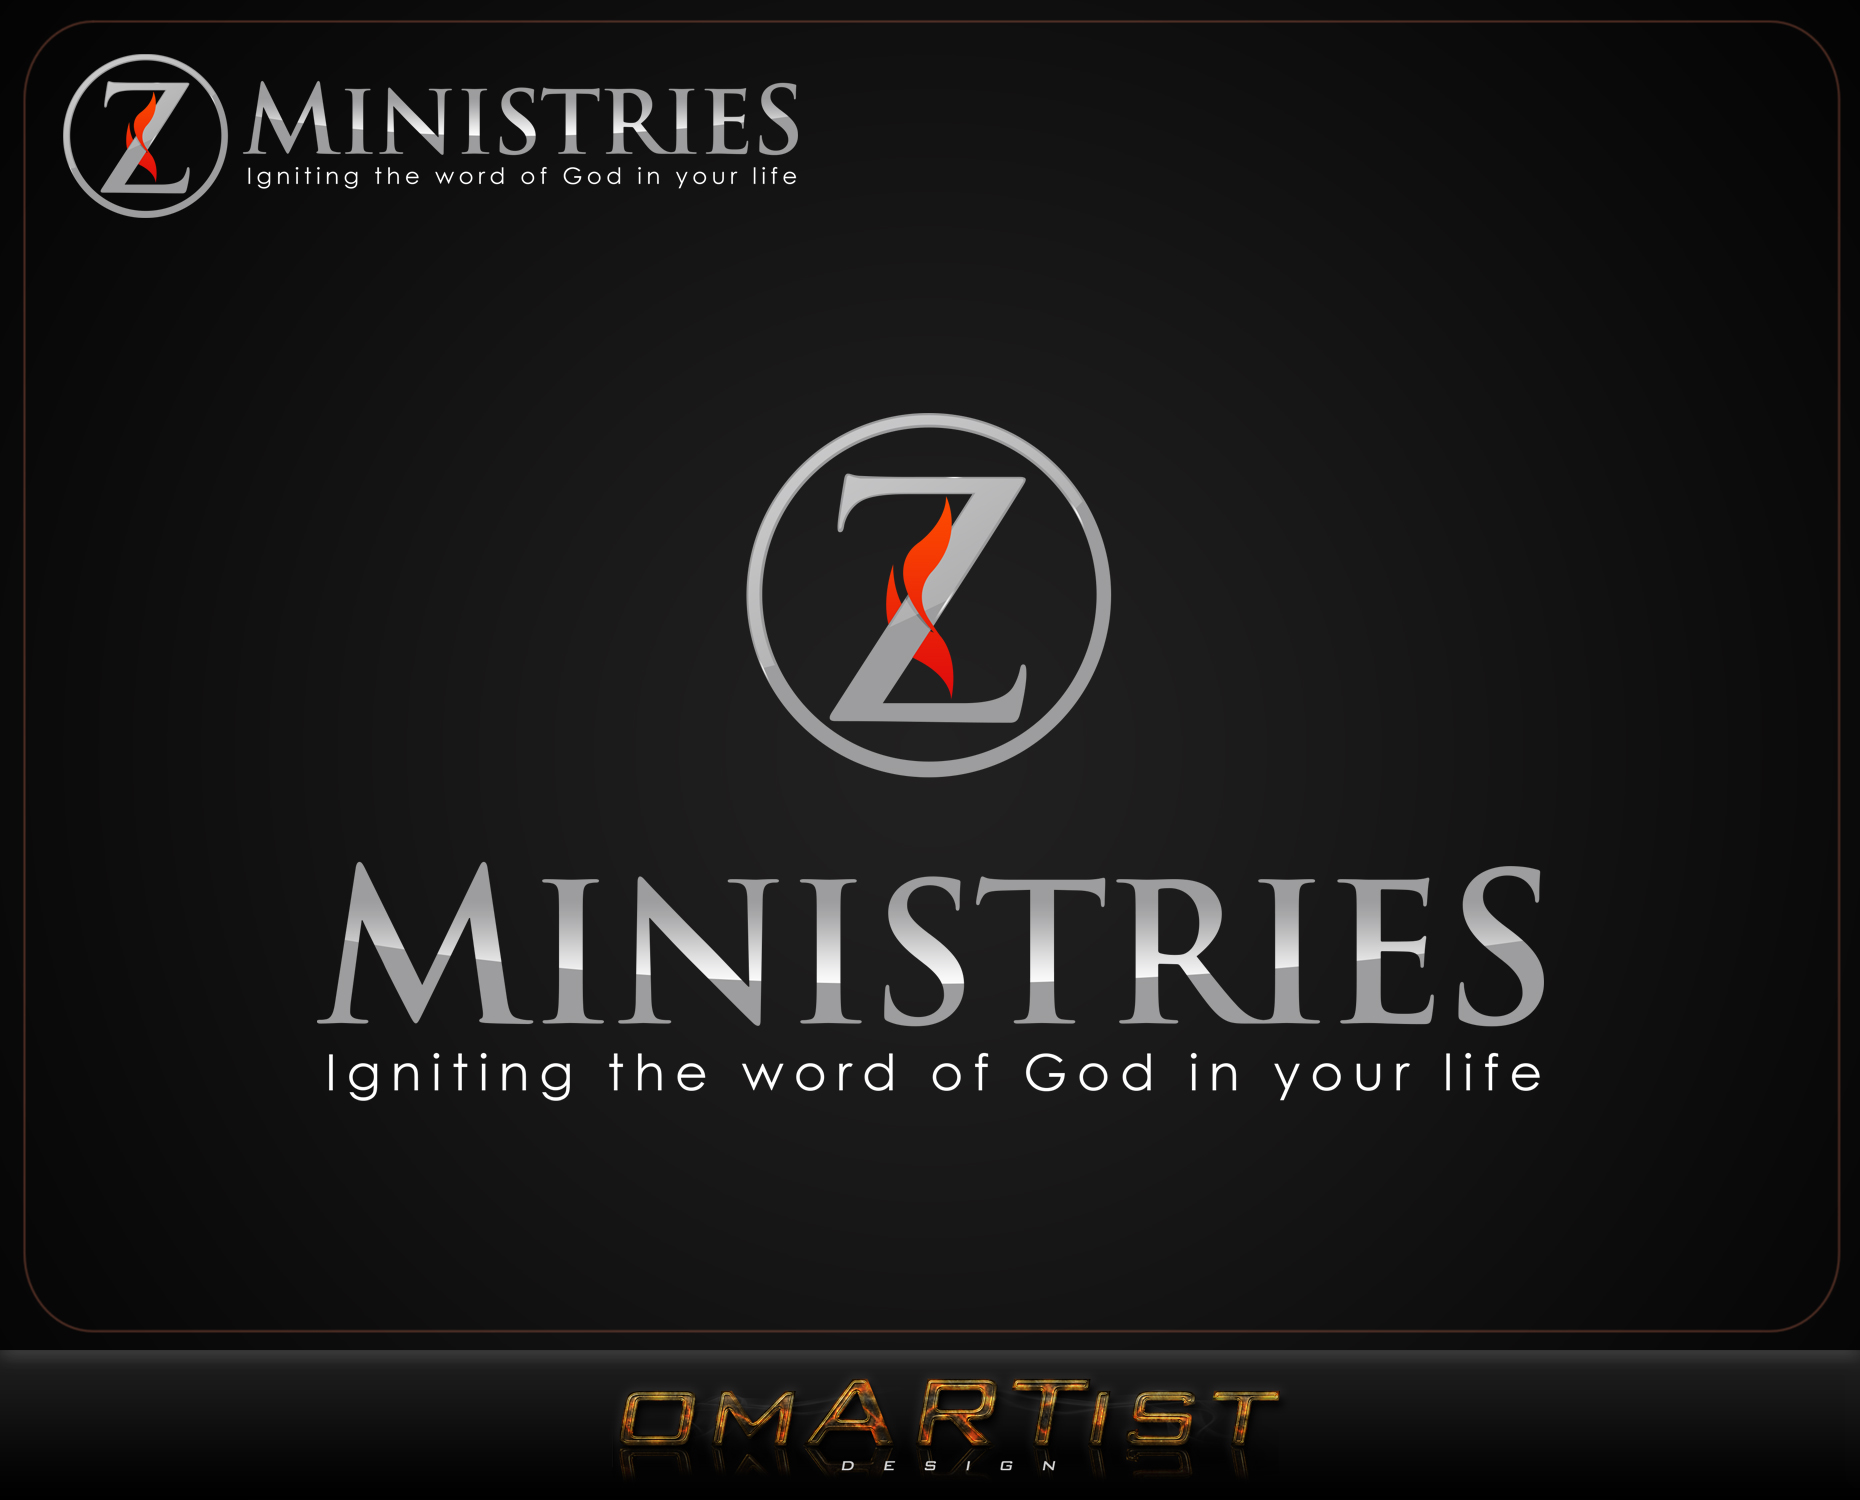 Logo Design by omARTist - Entry No. 162 in the Logo Design Contest Artistic Logo Design for Z Ministries.